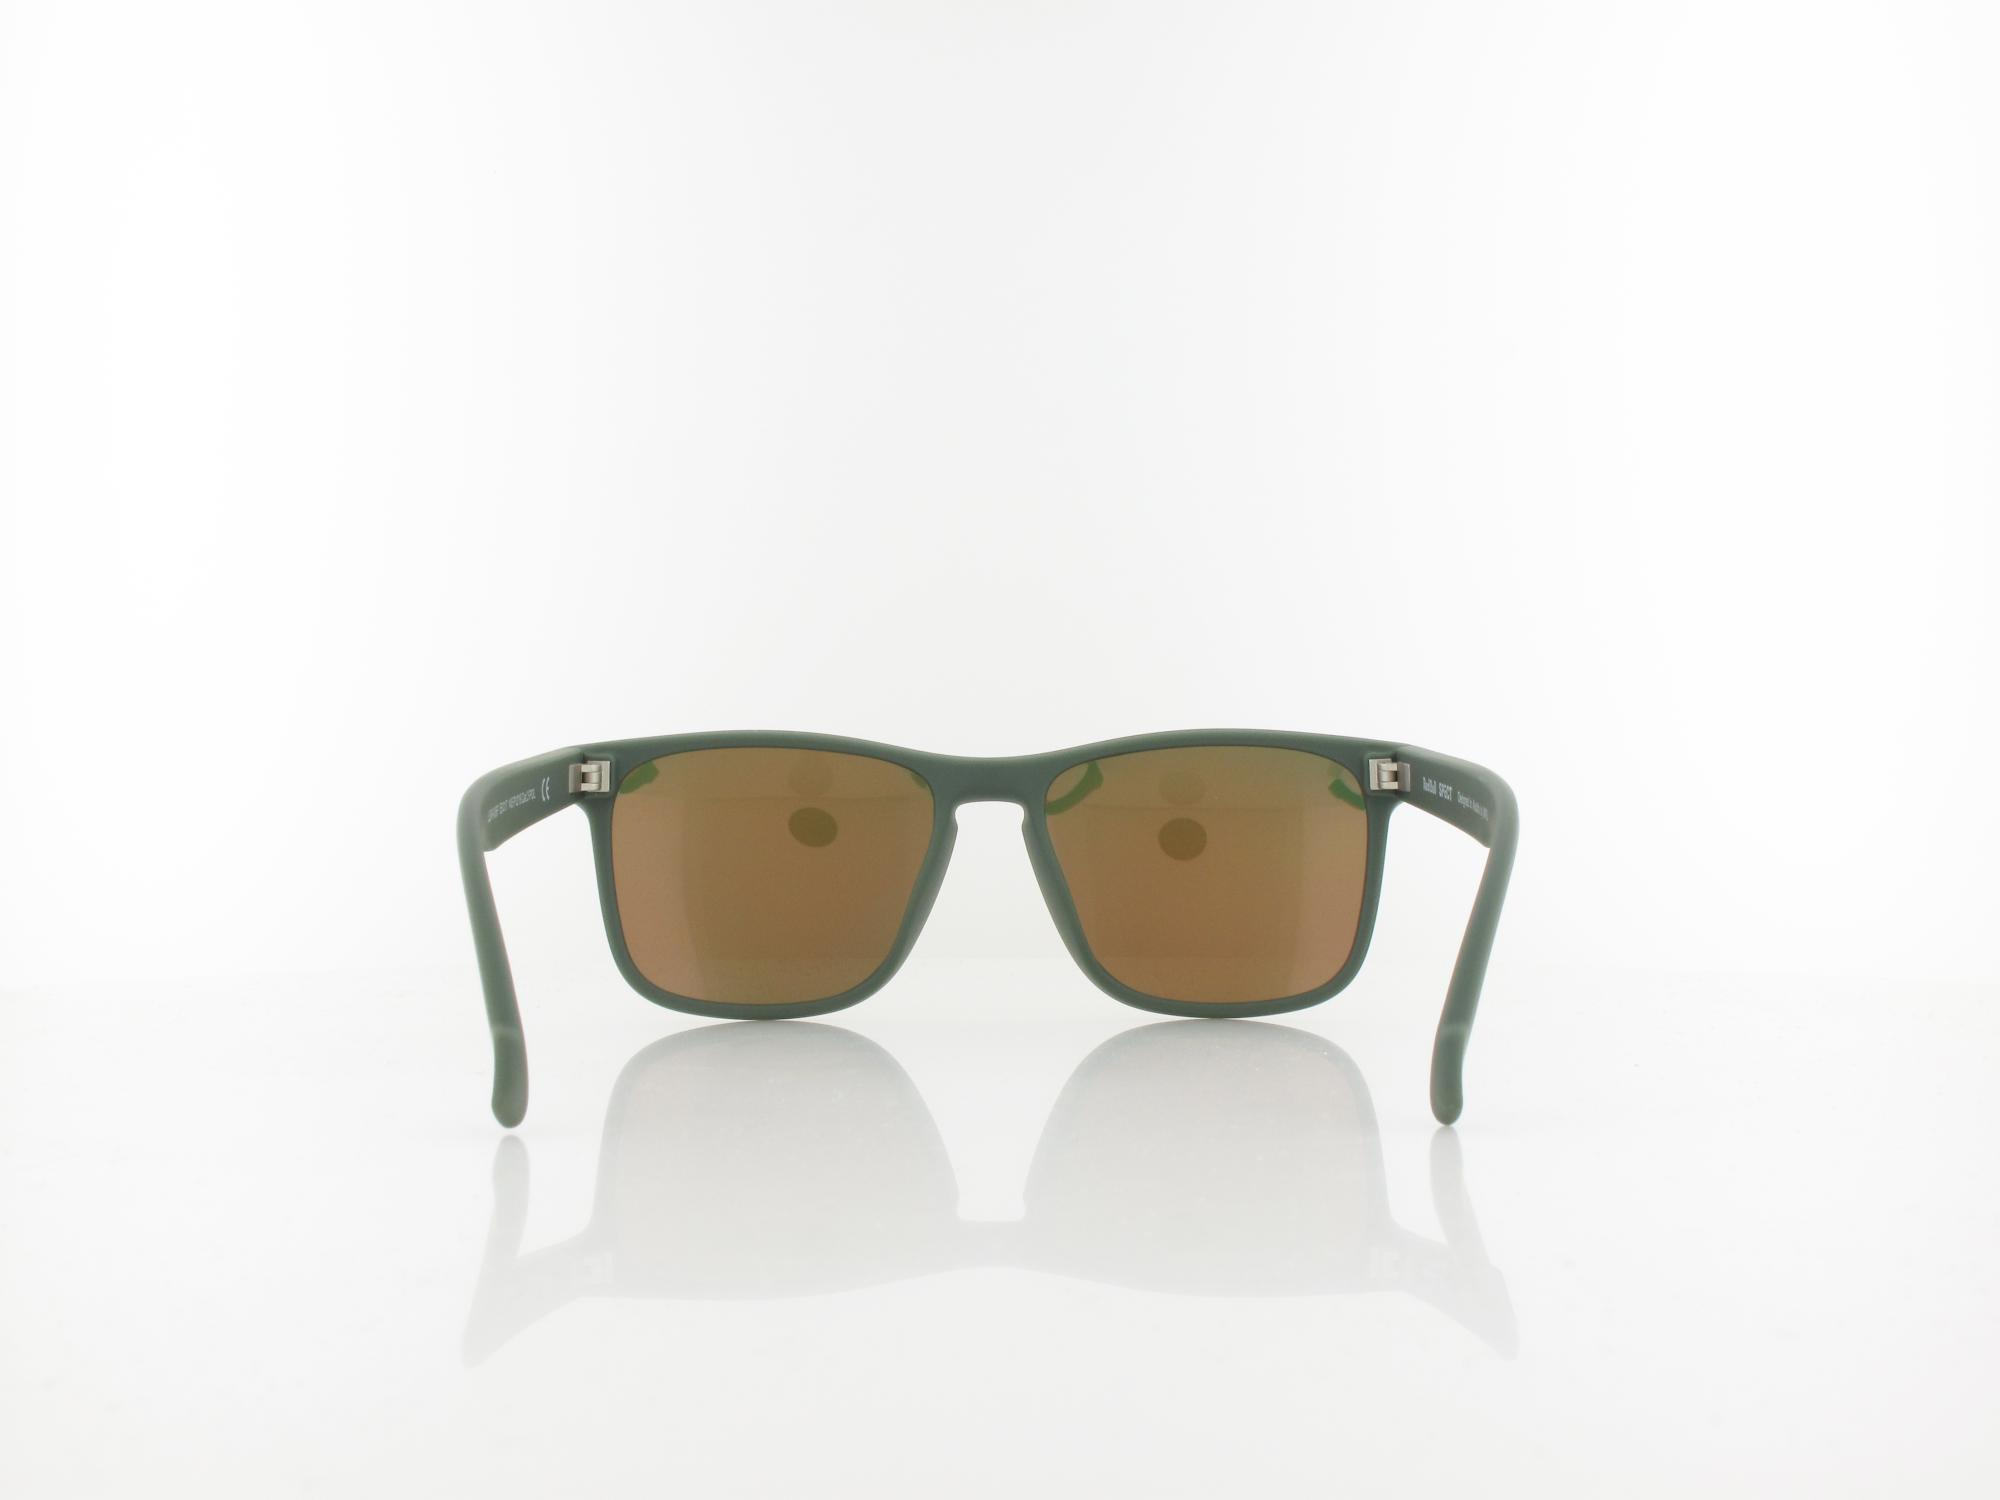 Red Bull SPECT | LEAP 006P 55 | olive green / brown with red mirror pol